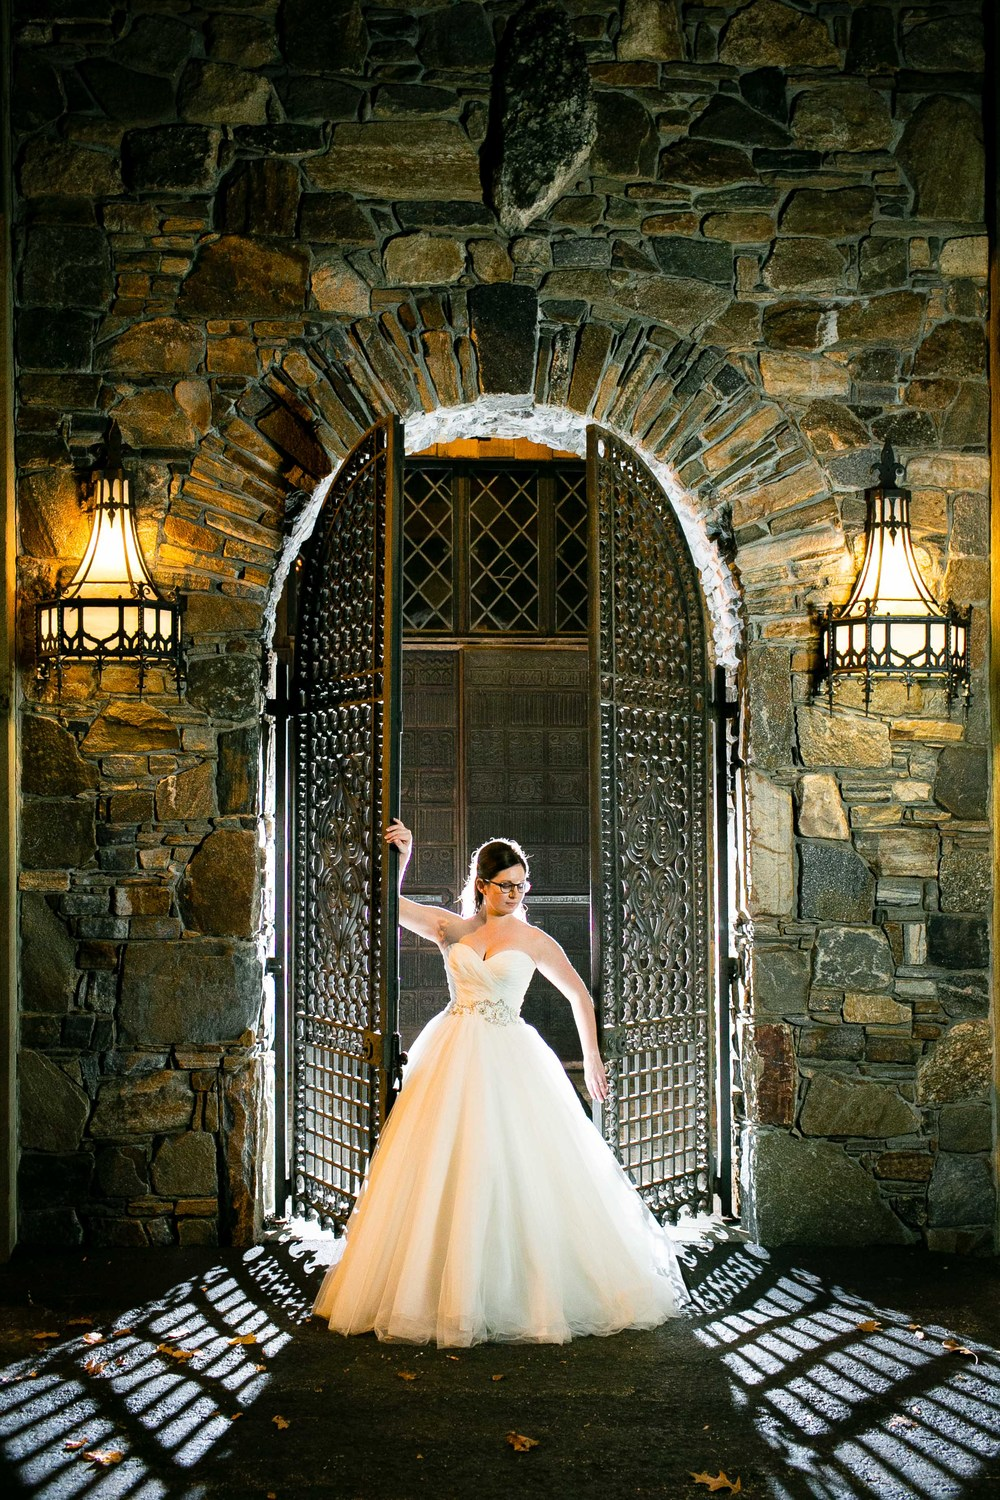 Creative-Wedding-Photography-Bill-Millers-Castle-Connecticut-Jacek-Dolata-Photography-3.jpg